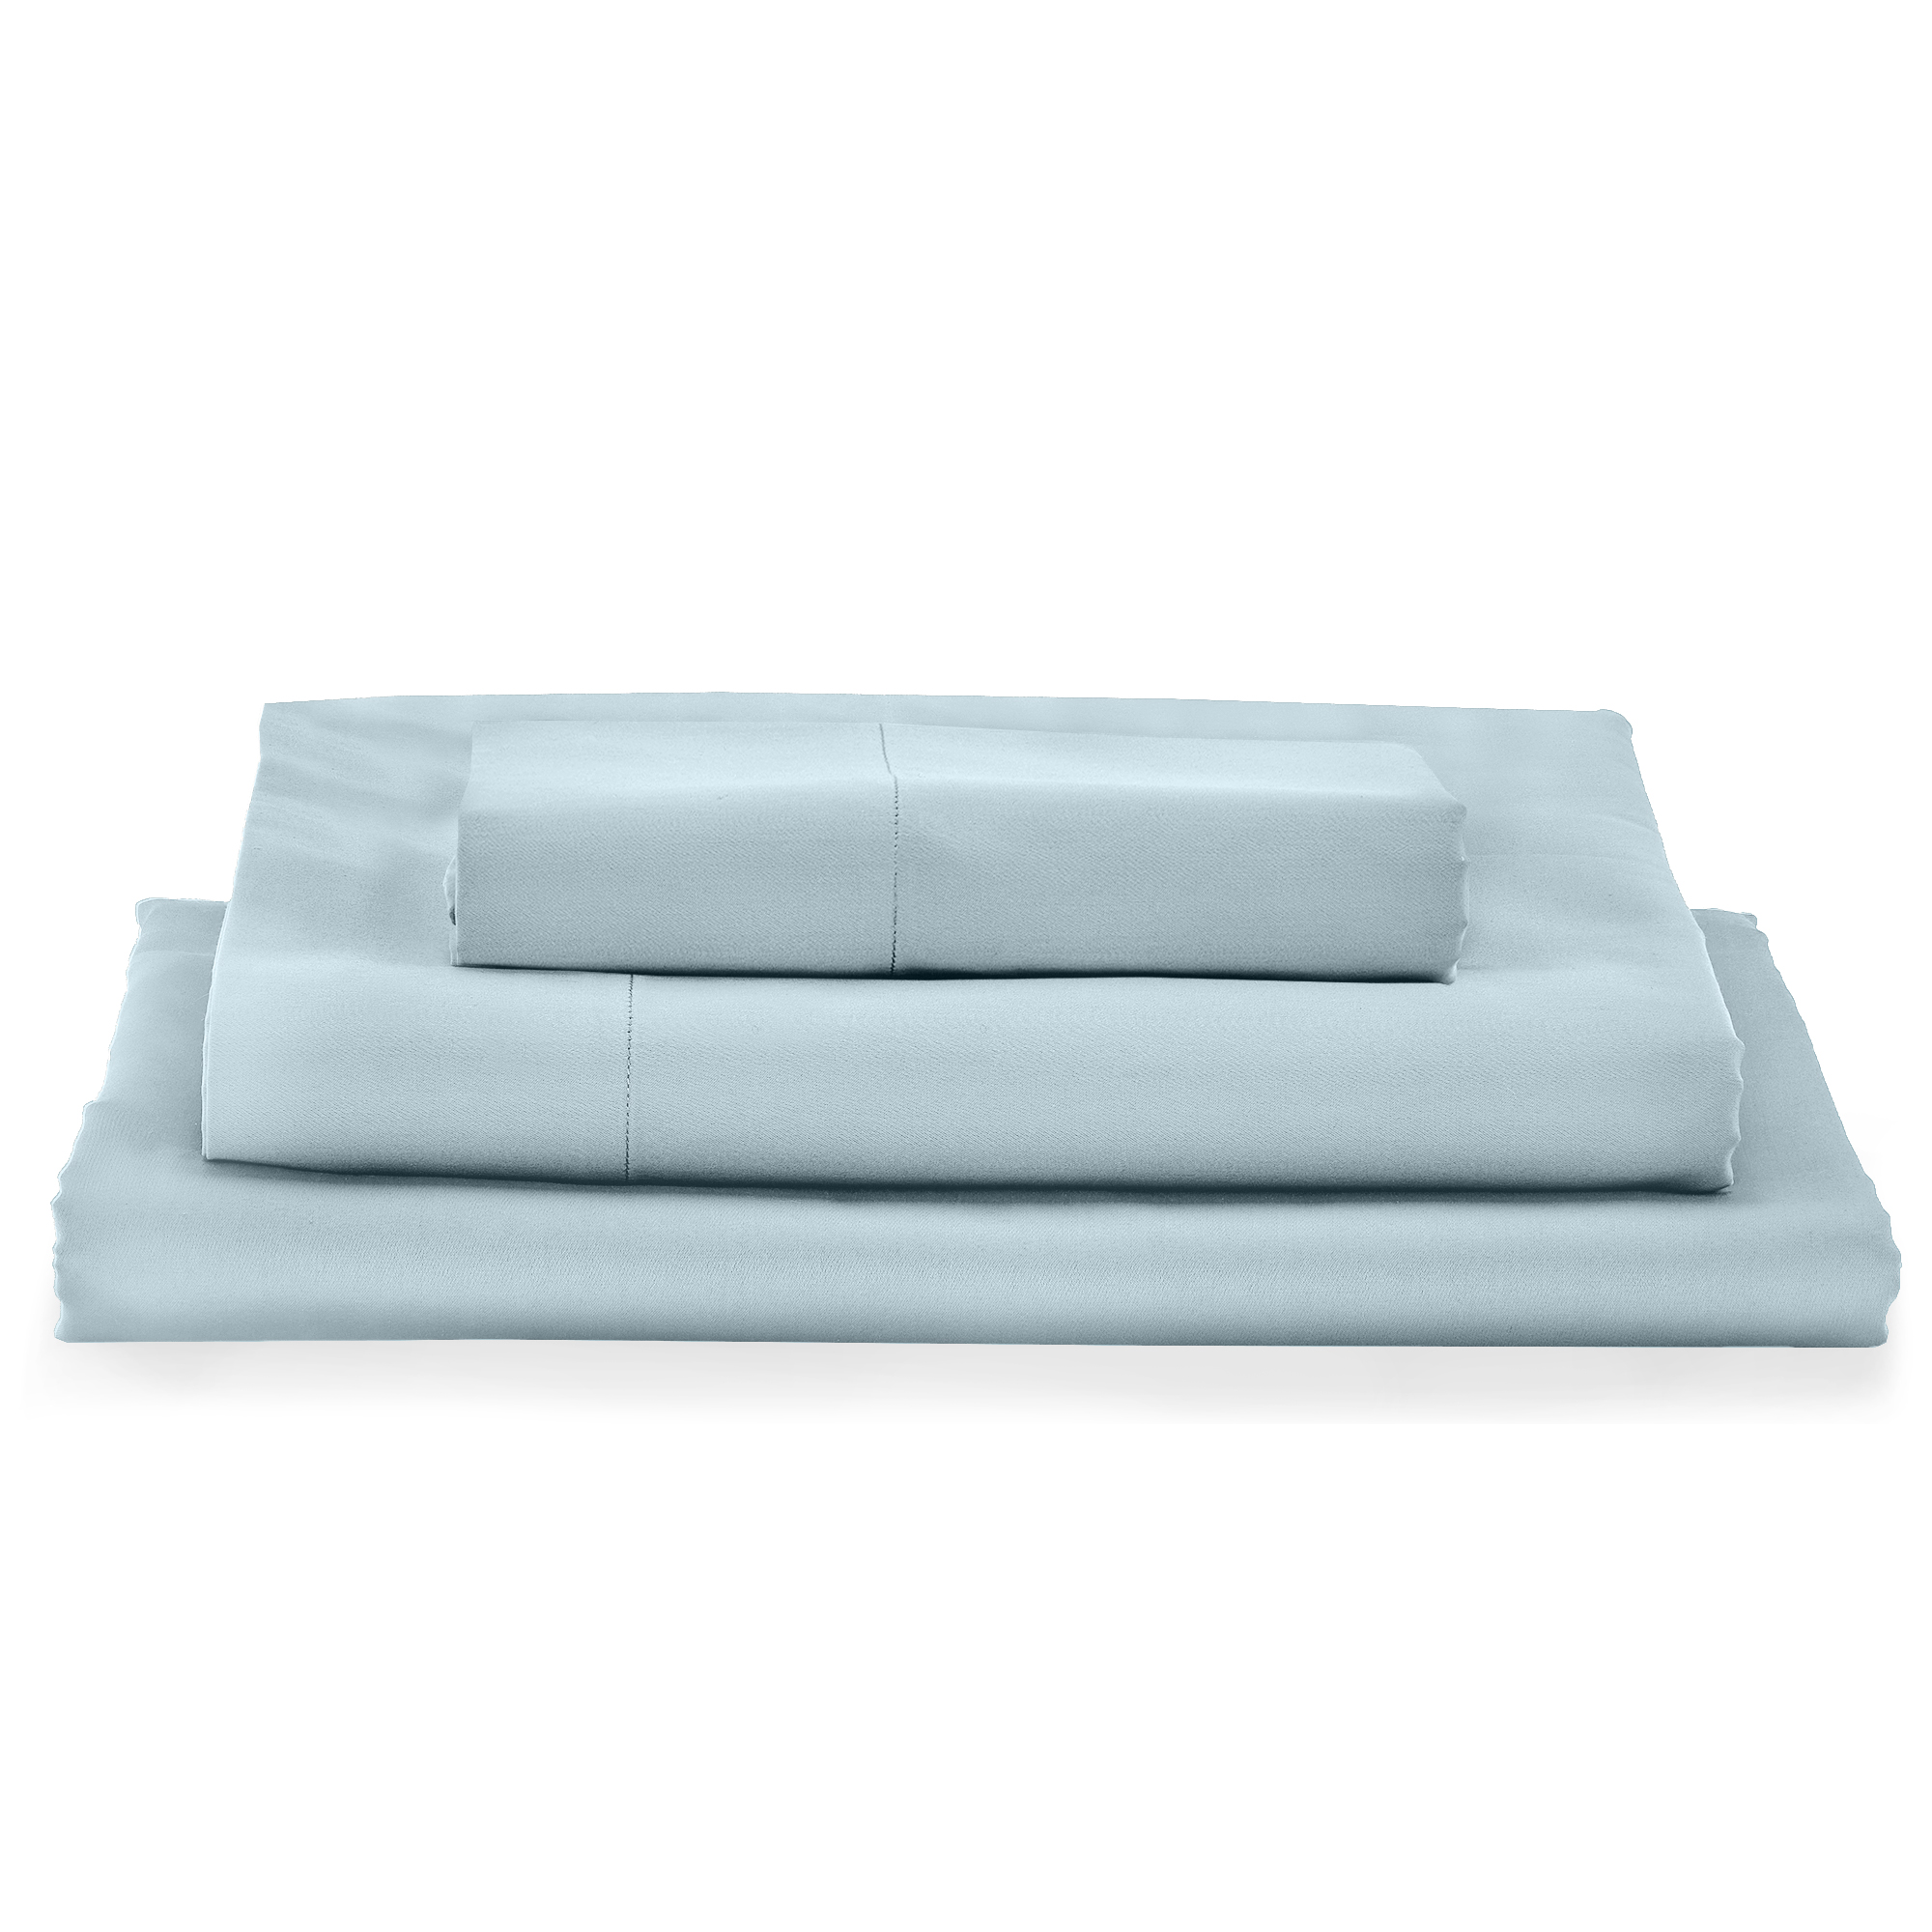 my pillow bed sheets twin light blue long staple cotton giza dreams bed sheet set